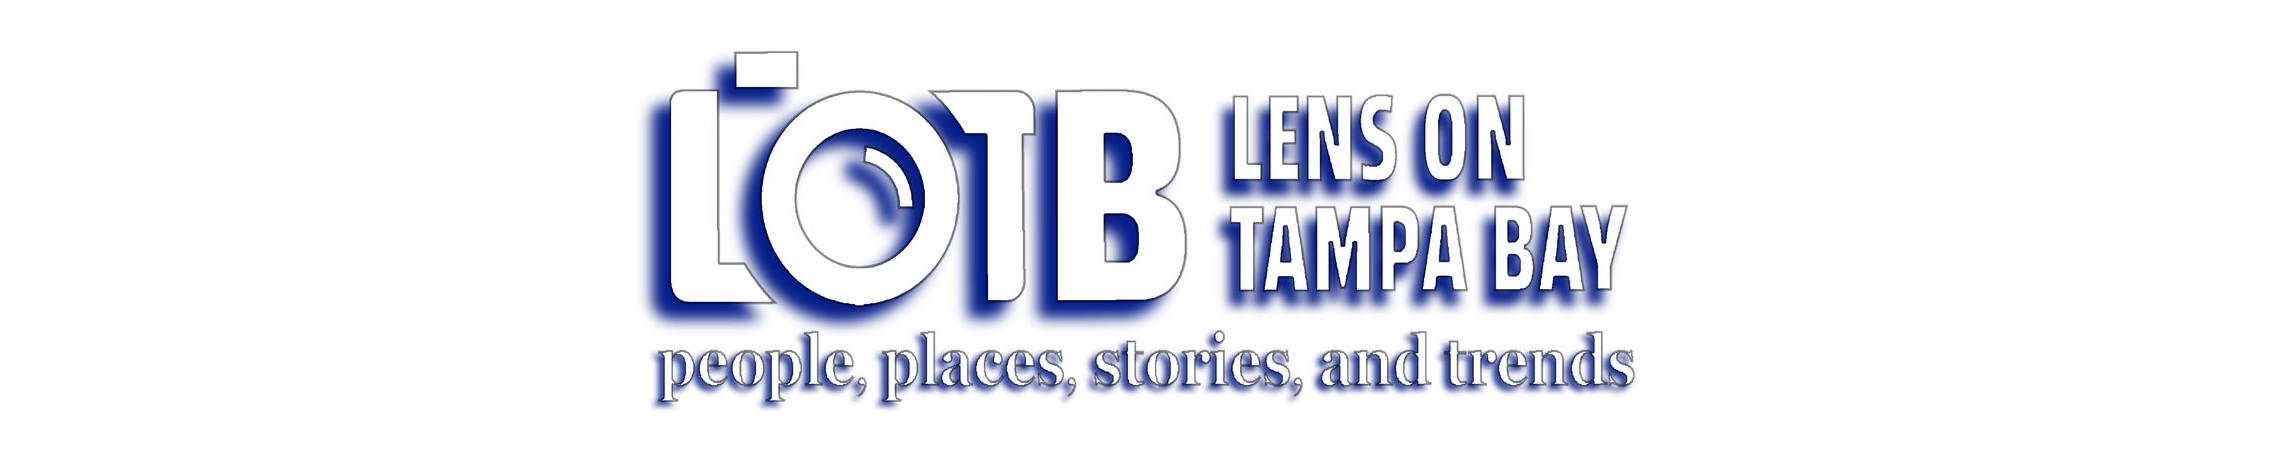 Please join me in seeing the many people, places, stories, and trends going  around you in the Tampa Bay through my camera lens. It's an awesome way to see the world.